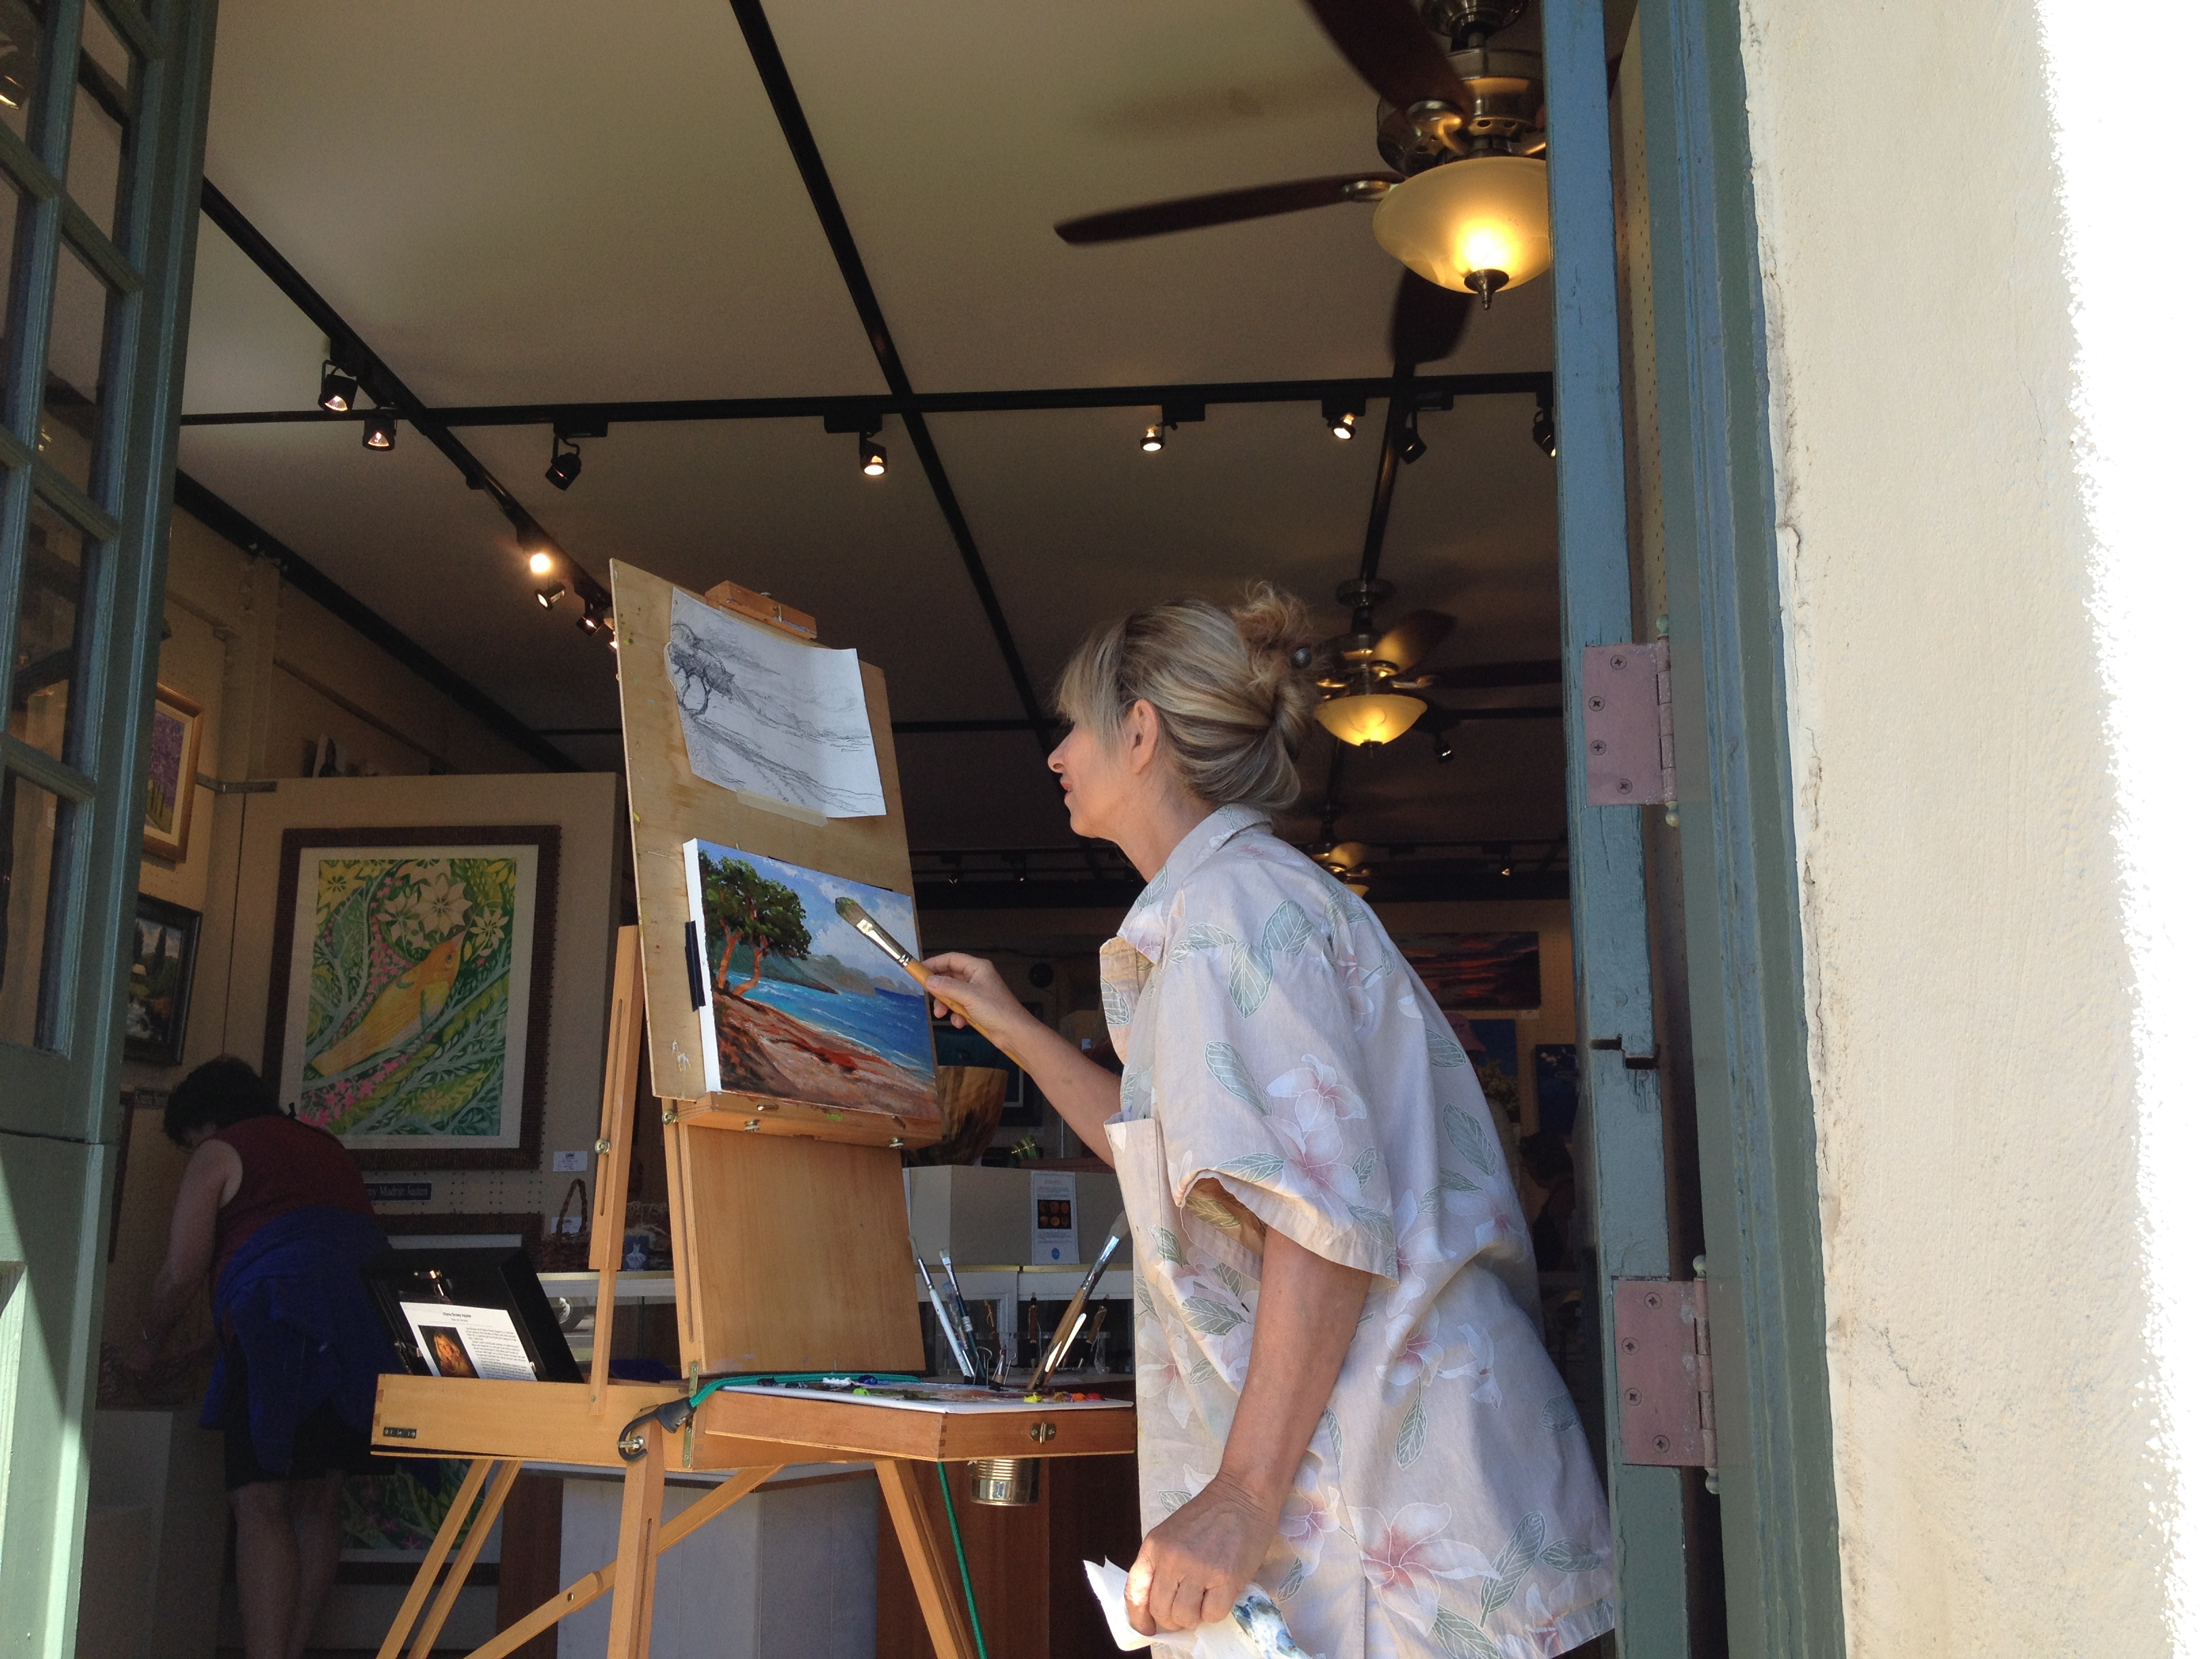 Artist Demo in Banyan Tree Gallery